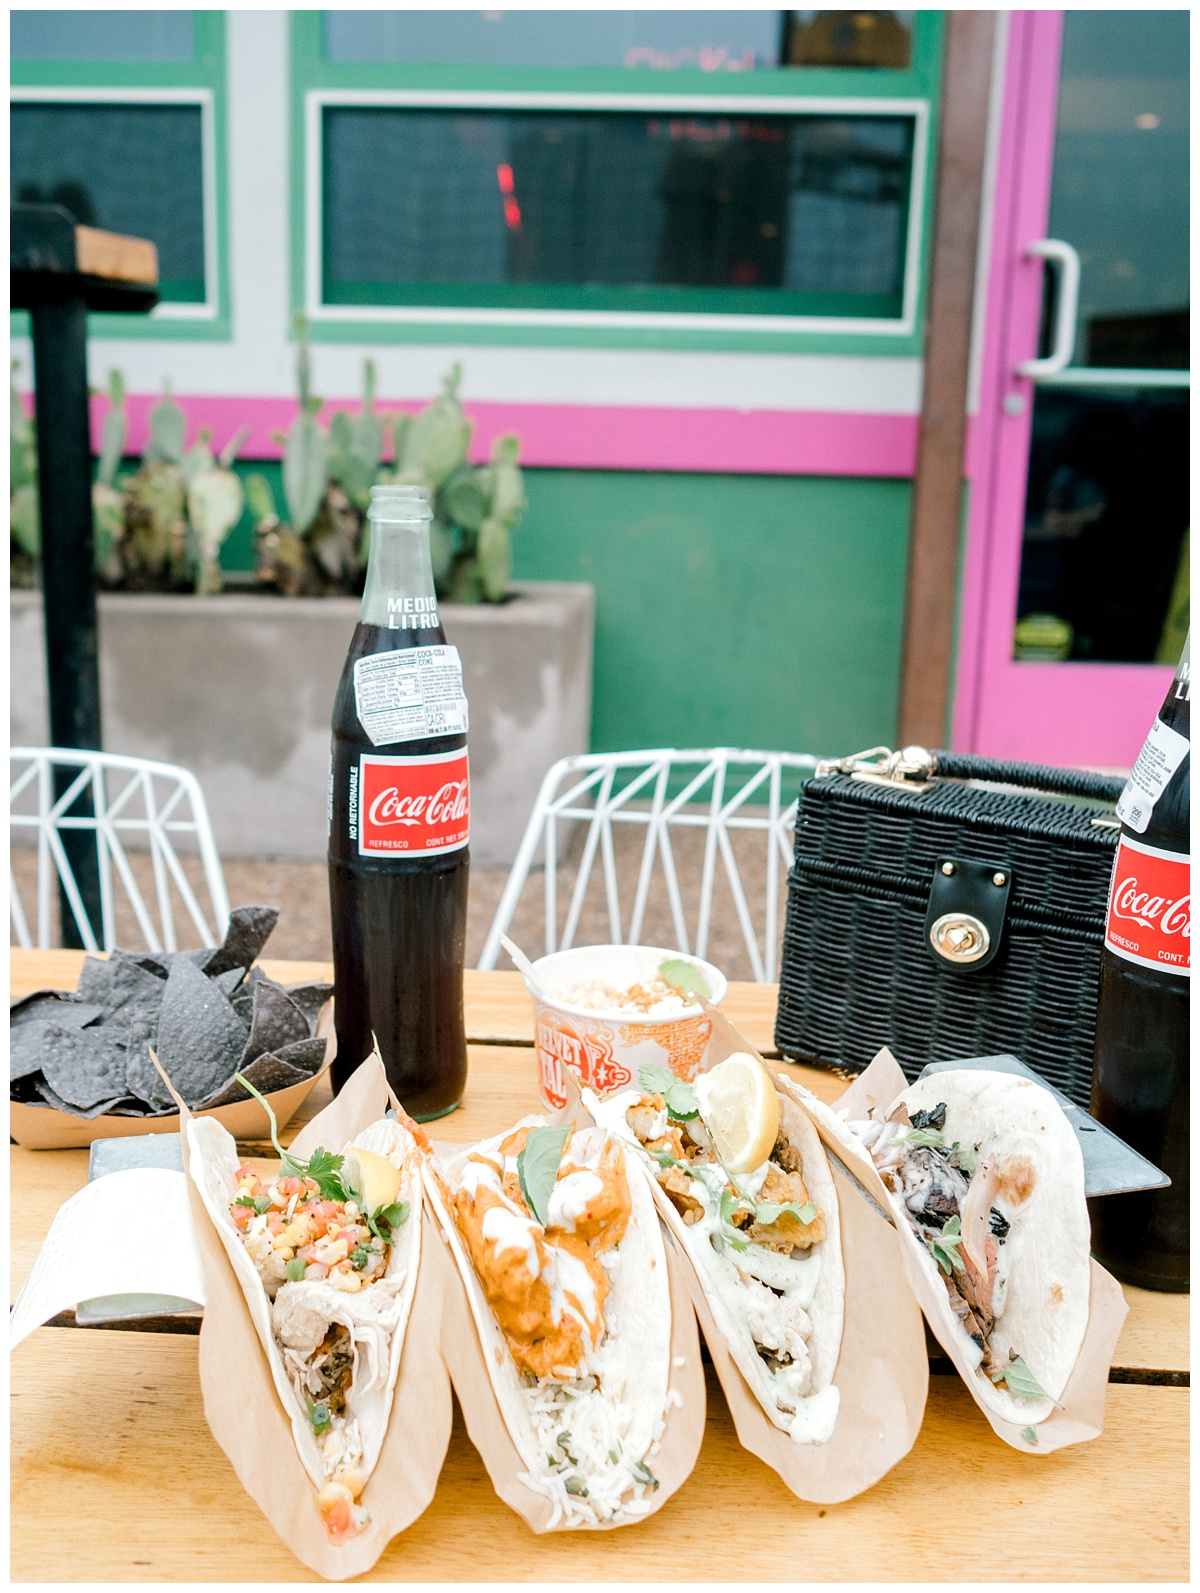 Velvet Tacos -  This place was a small place but cool concept...You stand in line and order then they call your name and you pick up and sit wherever, so kinda like a taco truck type deal. Fast service.We tried the Chicken and steak tacos...also the Chicken Tikka one and it tasted just like actual Tikka (not a flavor I prefer for my tacos though).BUT their CORN DIP is DELICIOUS! That was my favorite thing.